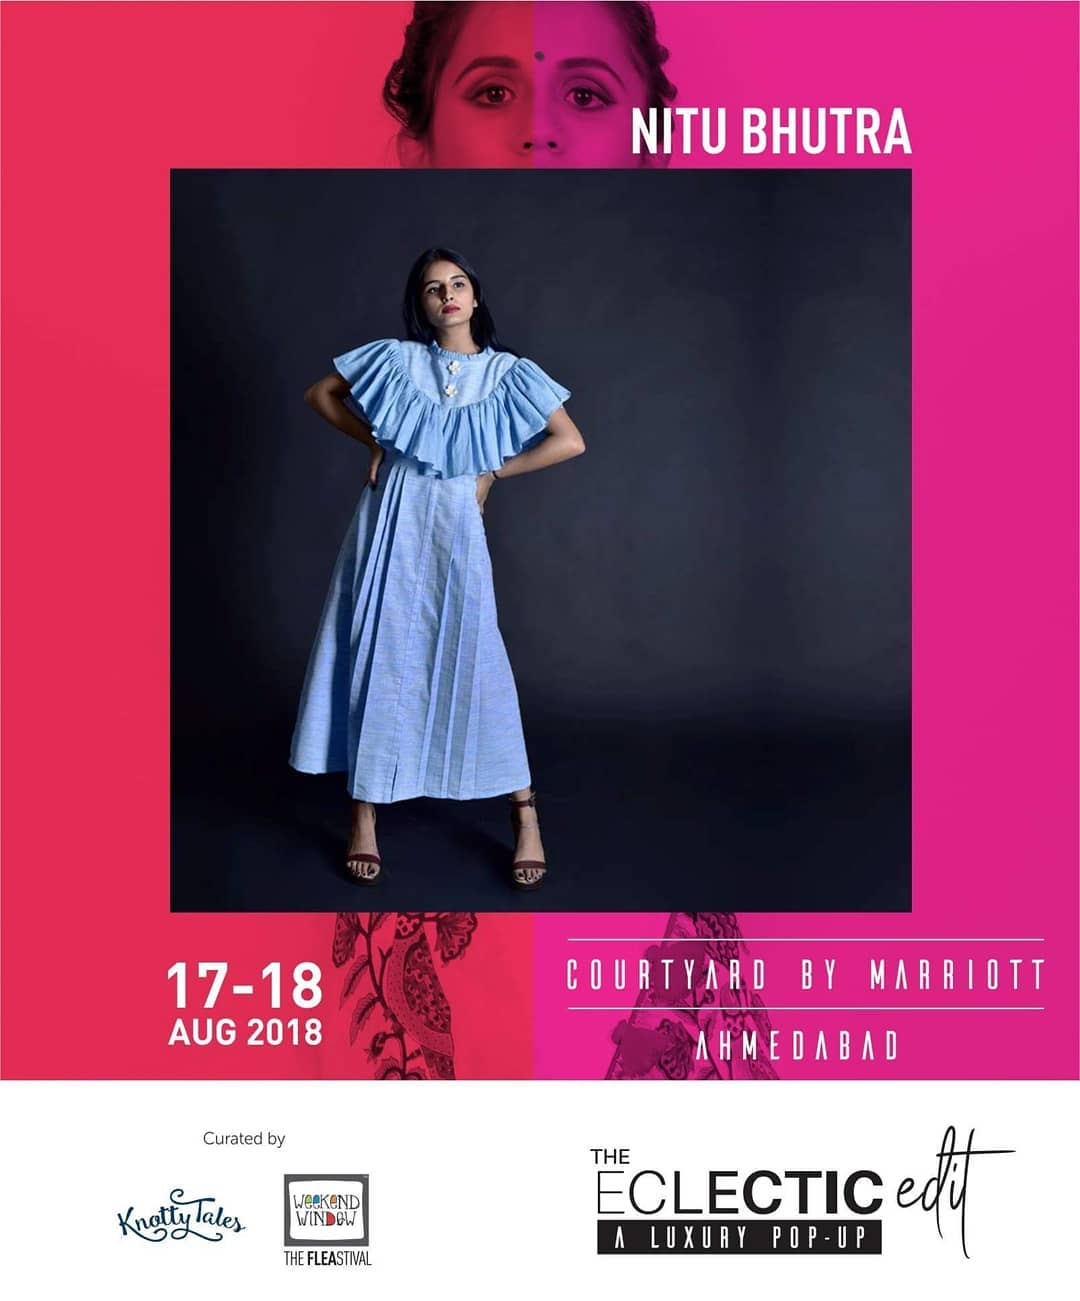 Fashion is very important. It is life-enhancing and, like everything that gives pleasure, it is worth doing well. Explore the collection of Nits Creations by designer @nitu_bhutra of women's designer wear that are well crafted and rich om craftsmanship!  Showcasing 65+ designers this 17th-18th August at The Eclectic Edit - Season 3 curated by Knotty Tales & Weekend Window at Courtyard by Marriott Ahmedabad.  #handblockprint #handmade #sustainable #upcycle #instafashion #indiantextile #textile #modernisingindiantextile #luxurydailywear #theeclecticedit #knottytales #weekendwindow #luxury #popup #festive